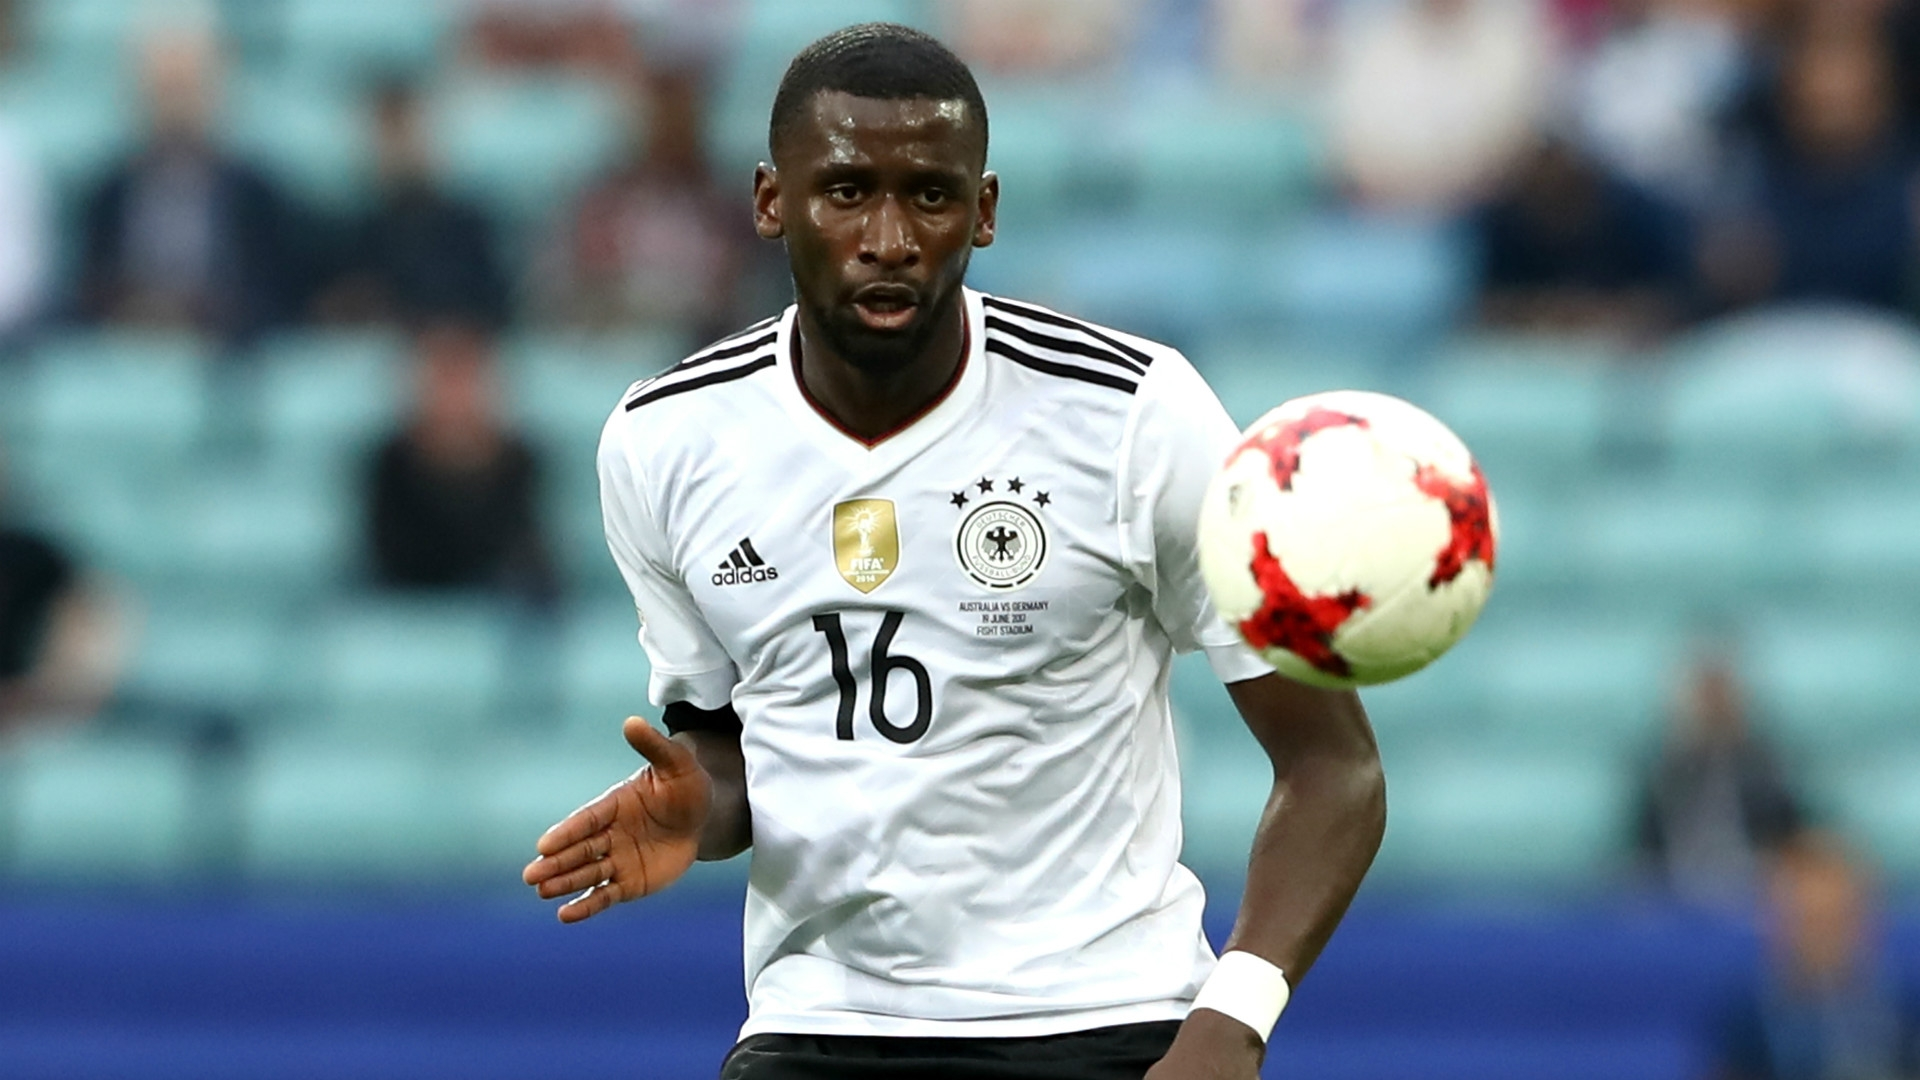 . Roma commanded a hefty price for Rudiger. Chelsea agreed to pay €35 million upfront, with an additional €4m that may be added as bonuses.